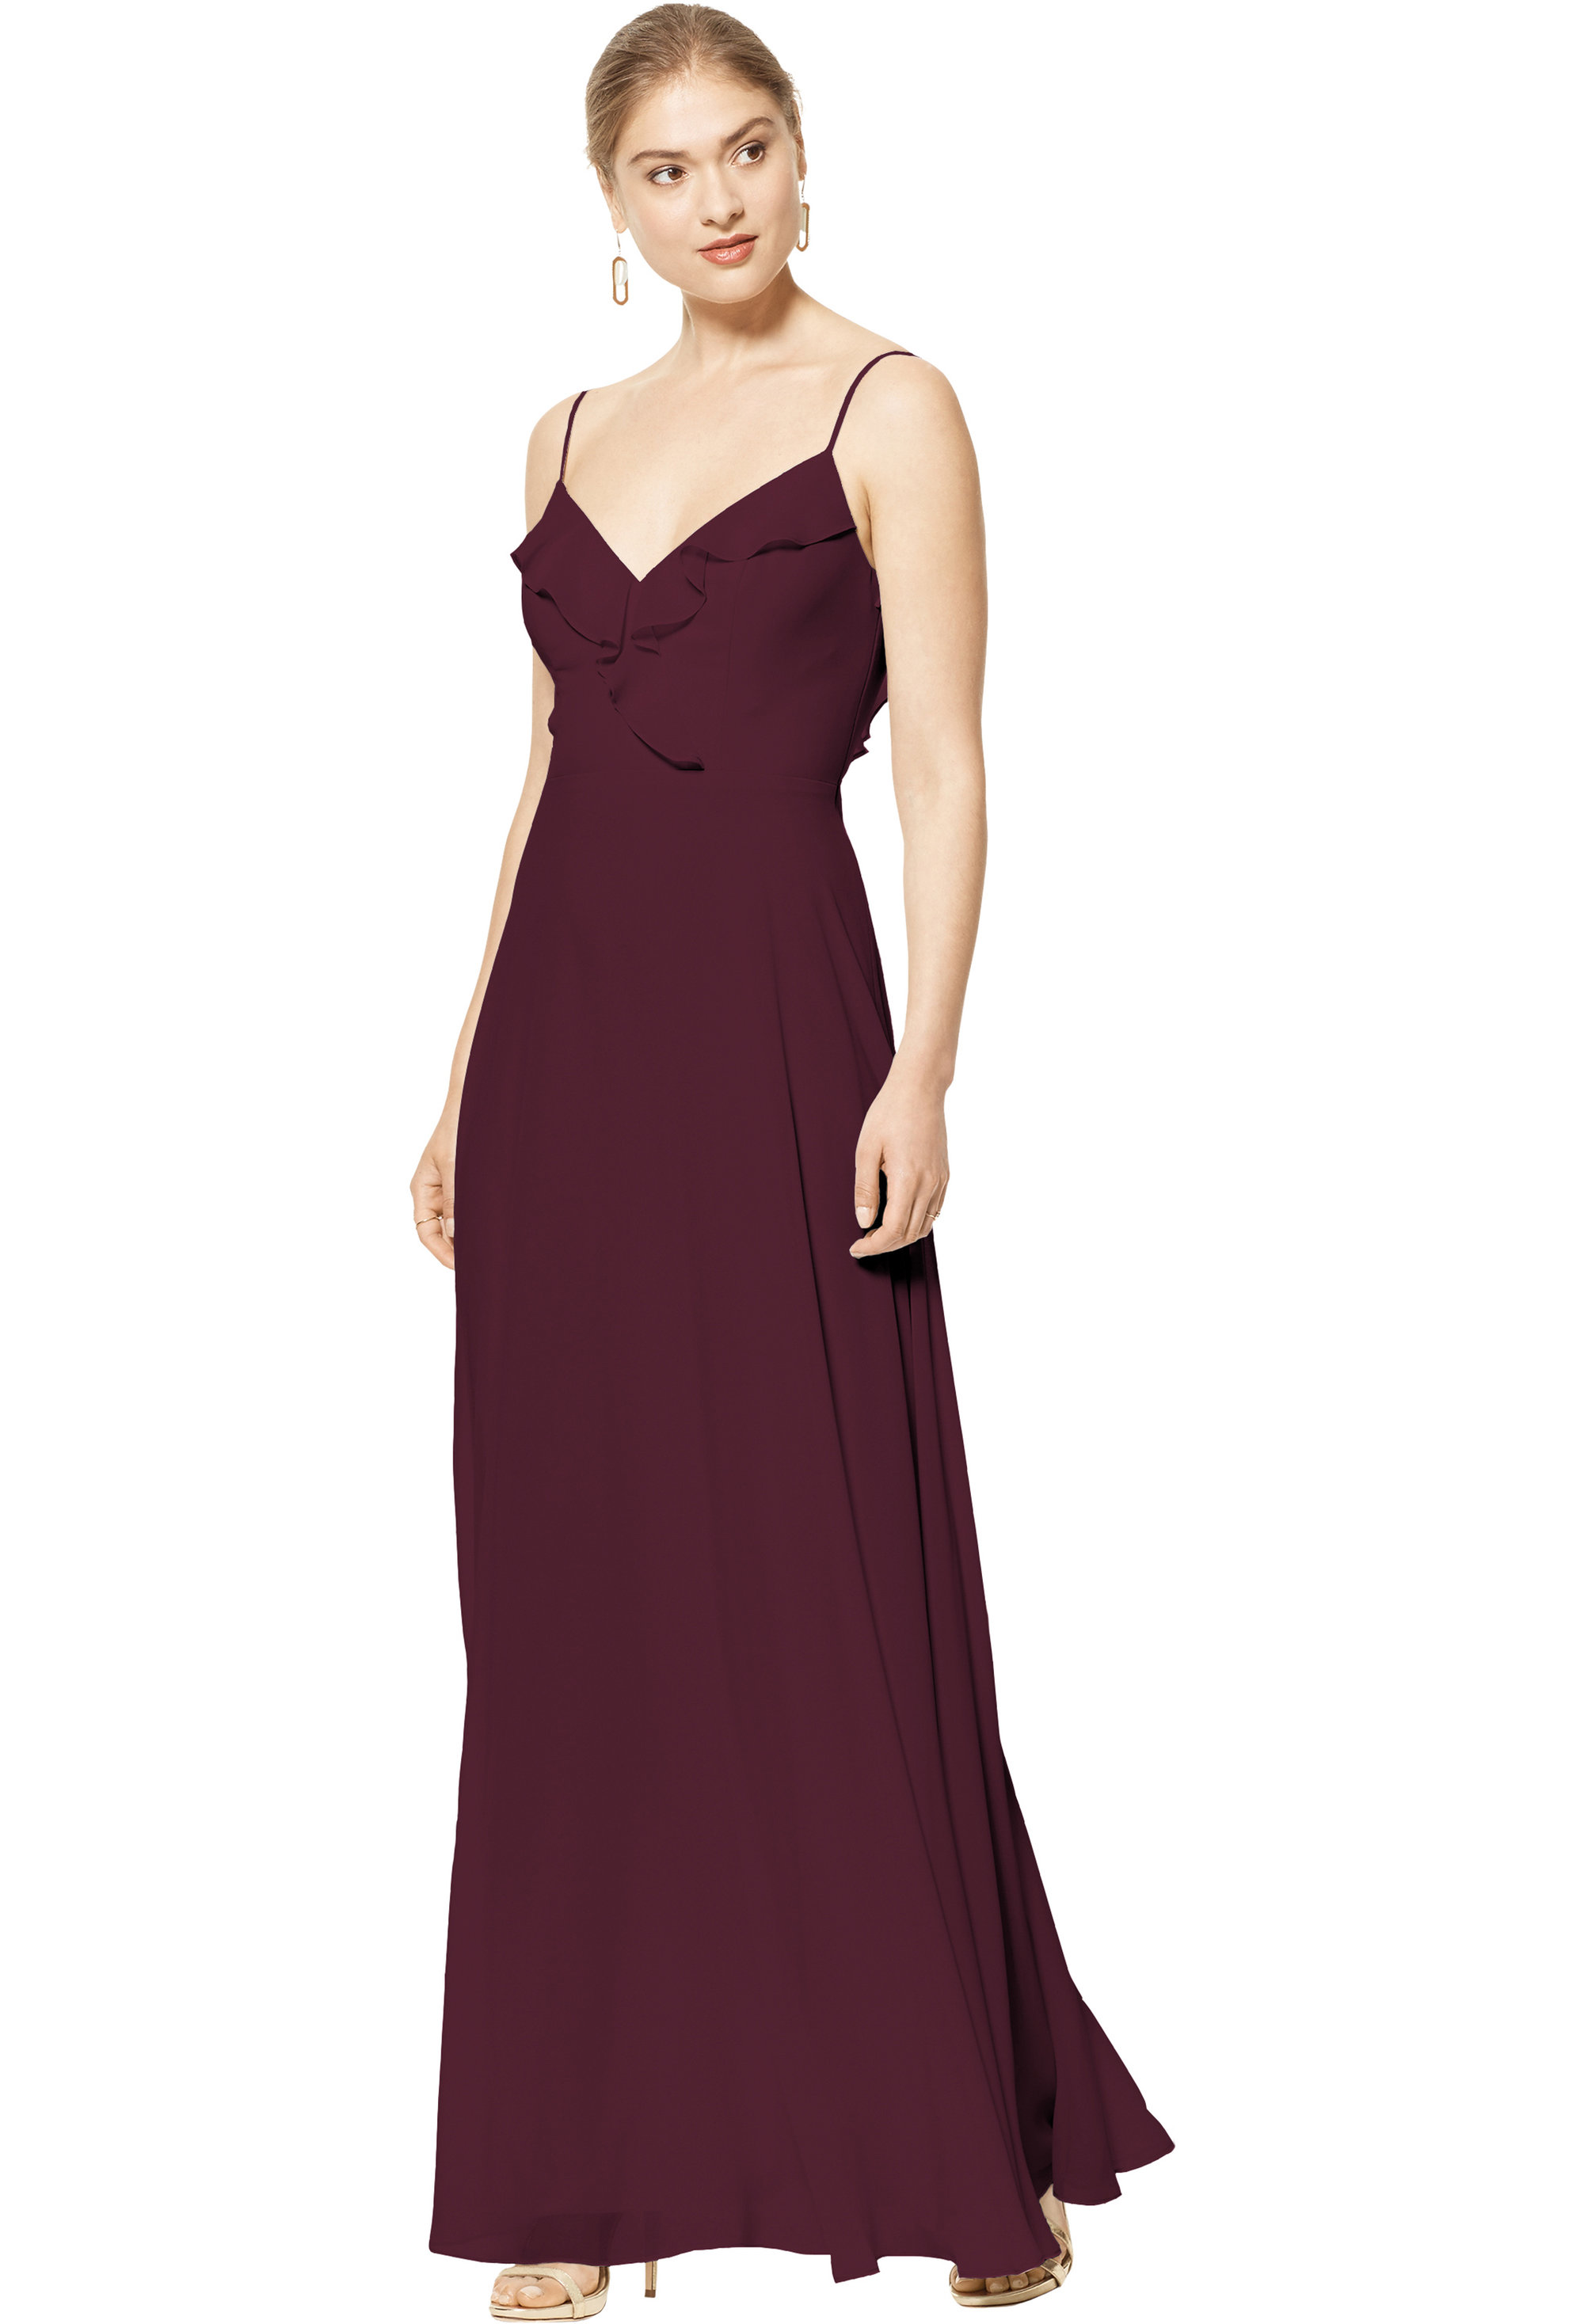 Bill Levkoff WINE Chiffon V-neck A-line gown, $170.00 Front